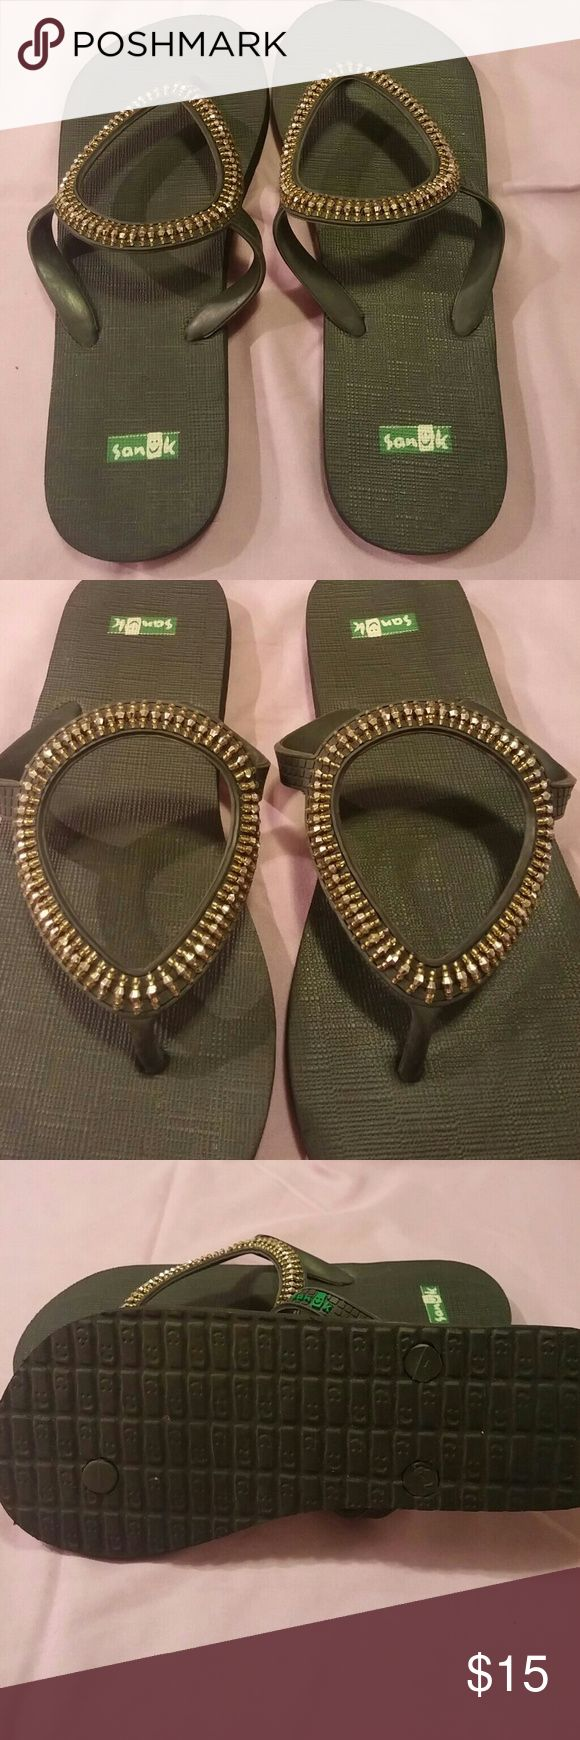 Sanuk flip flops with bronze bling Bronze colored beads line the face of flip flop. Fits 7-8. Very cute Sanuk Shoes Sandals